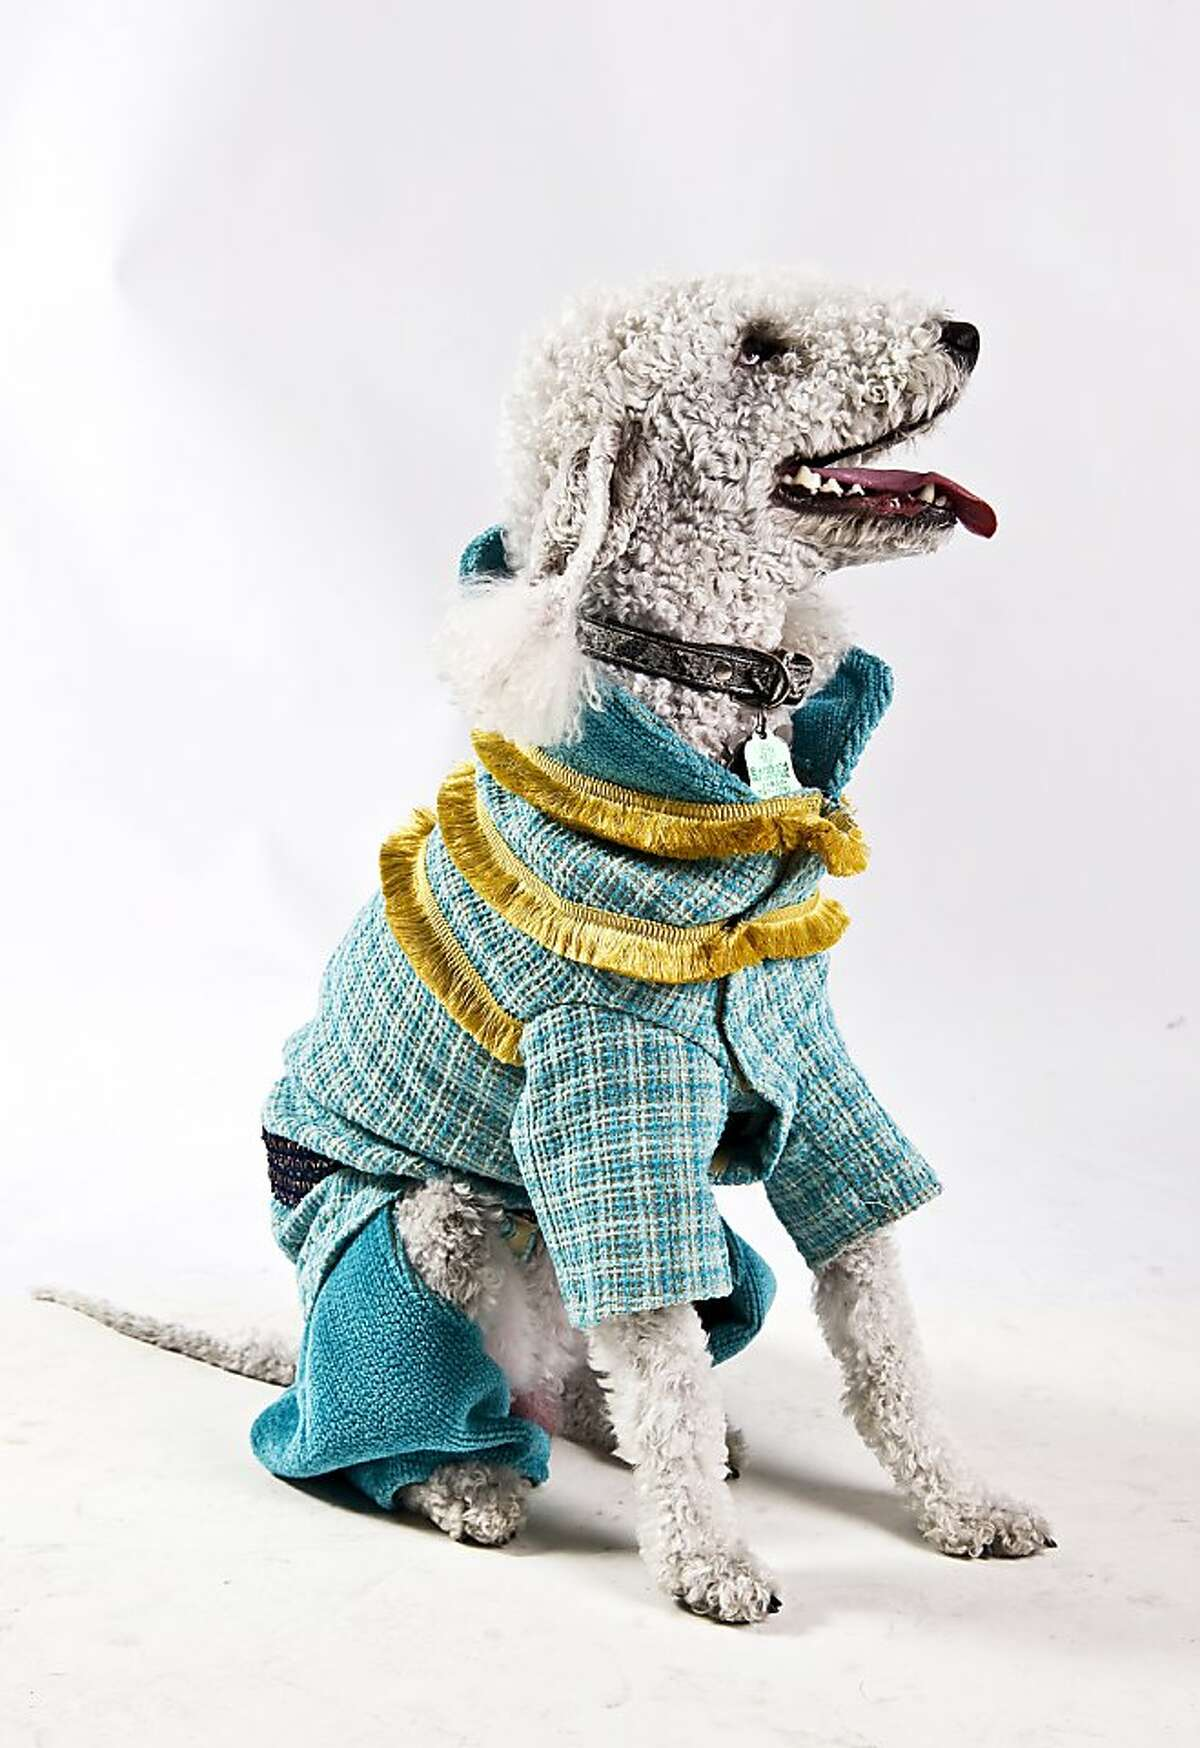 Pushkin, a Bedlington Terrier, is wearing a costume inspired by Chanel?•s Byzance Collection. The fabric is donated by Sloa Miyasato and sewing by Belmar Fine Custom Upholstery. The jacket fabric is Coco Tweed and the trousers are Montecatini, both in Carribe. Pushkin's person is Ilona Berylant. Haute Dog SF a fashion show of San Francisco's fashion aware dogs held Friday February 3, 2012 at the San Francisco Design Center. The show included 60+ dogs taking to the runway to strut their stuff. The event was a benefit for Canine Companions.